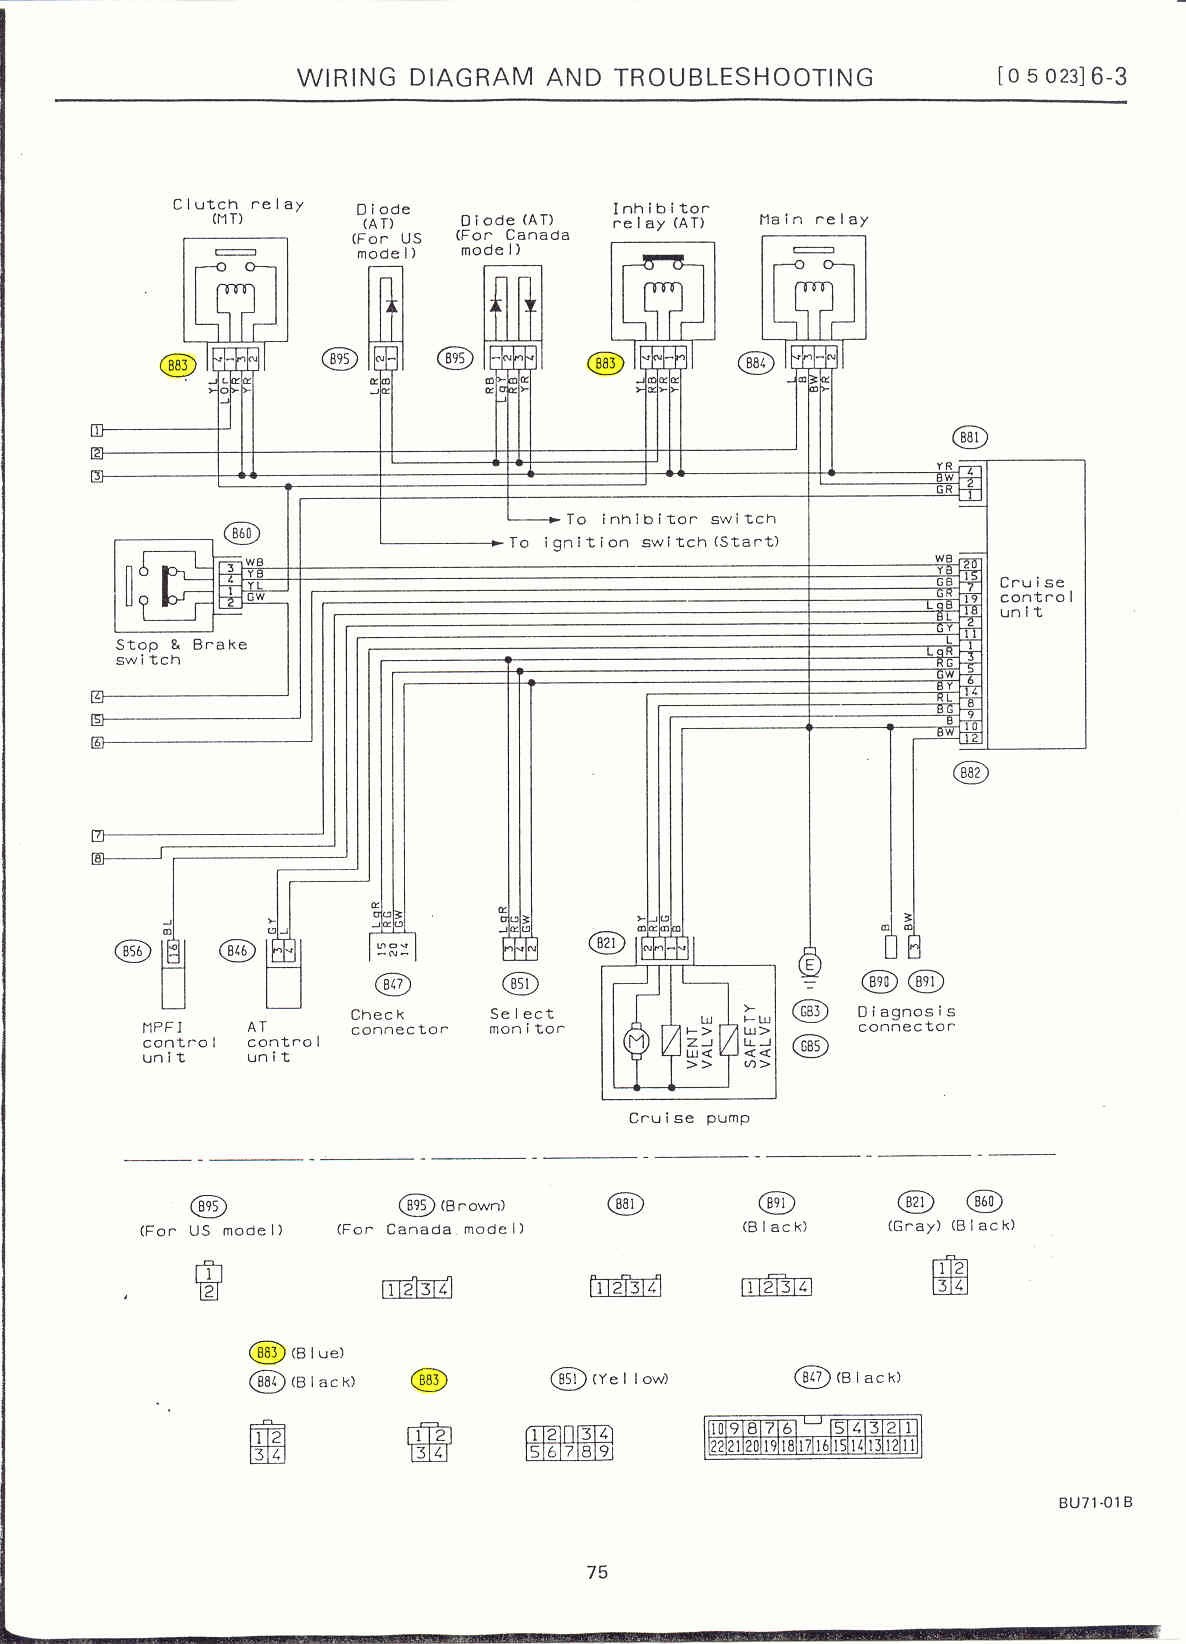 2001 Subaru Outback Wiring Diagram Just Another Blog Parts Images Gallery